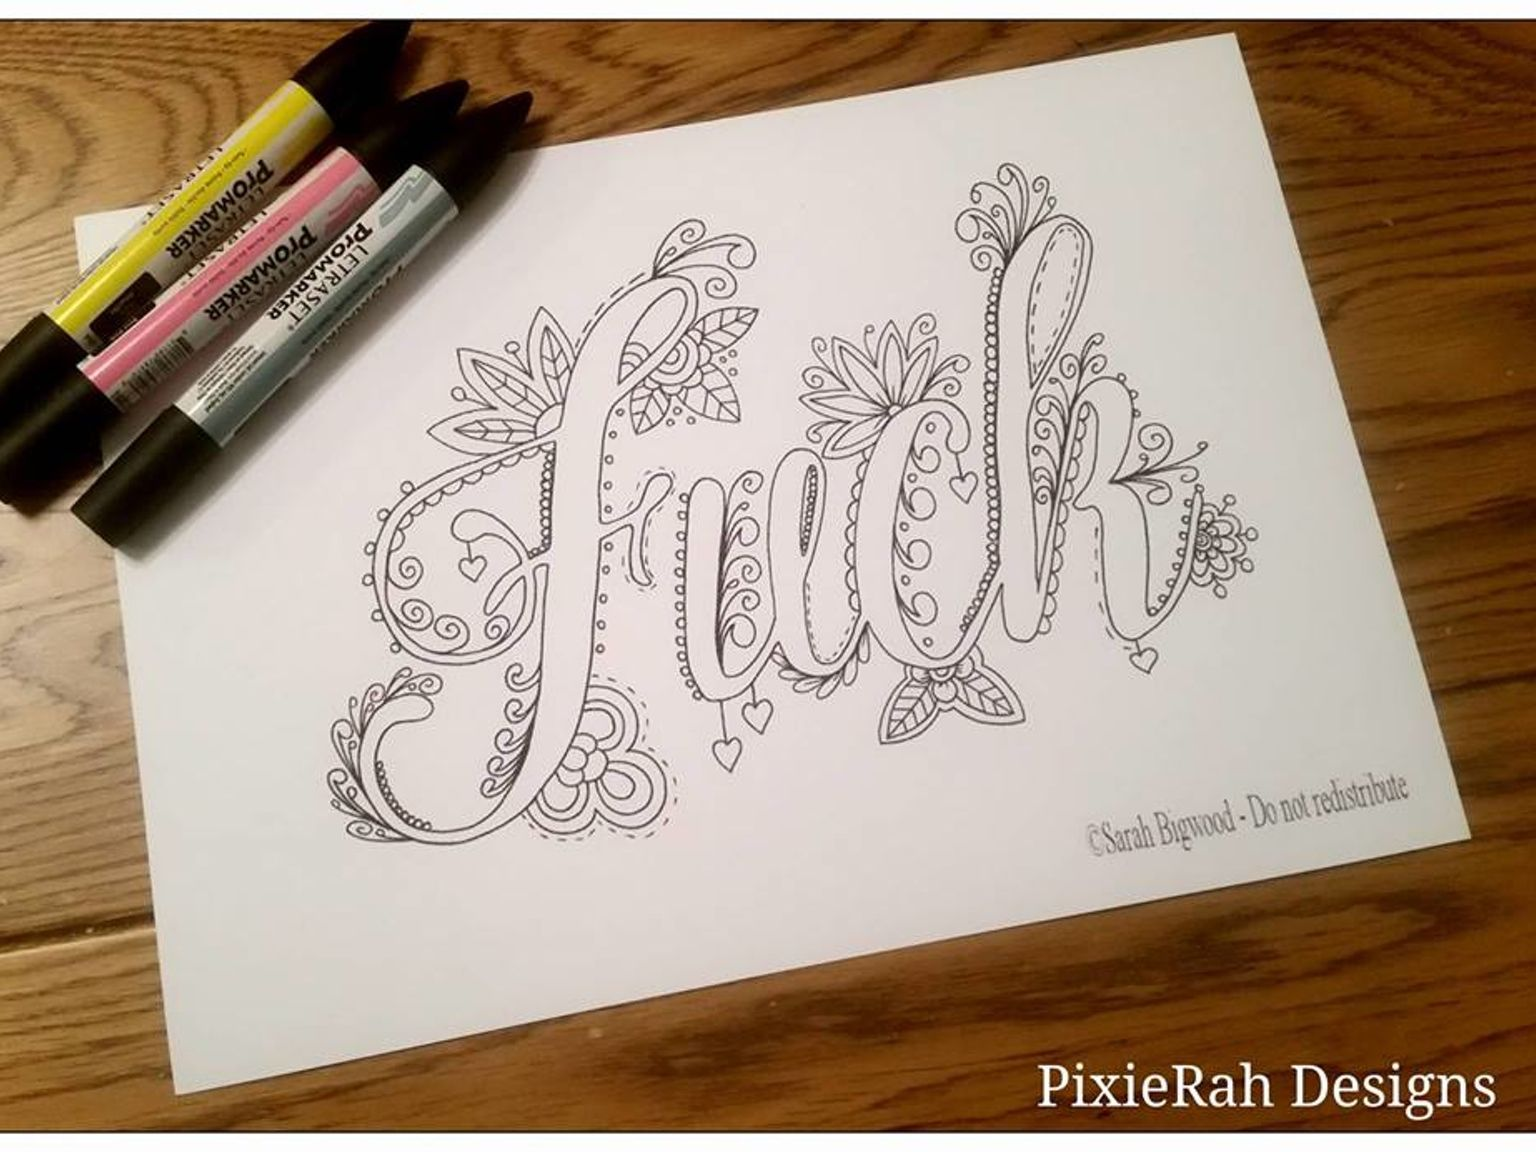 Swear word coloring book sarah bigwood - I Neeeeed This Coloring Book A Fancy Swear Word Colouring Book For Adults For